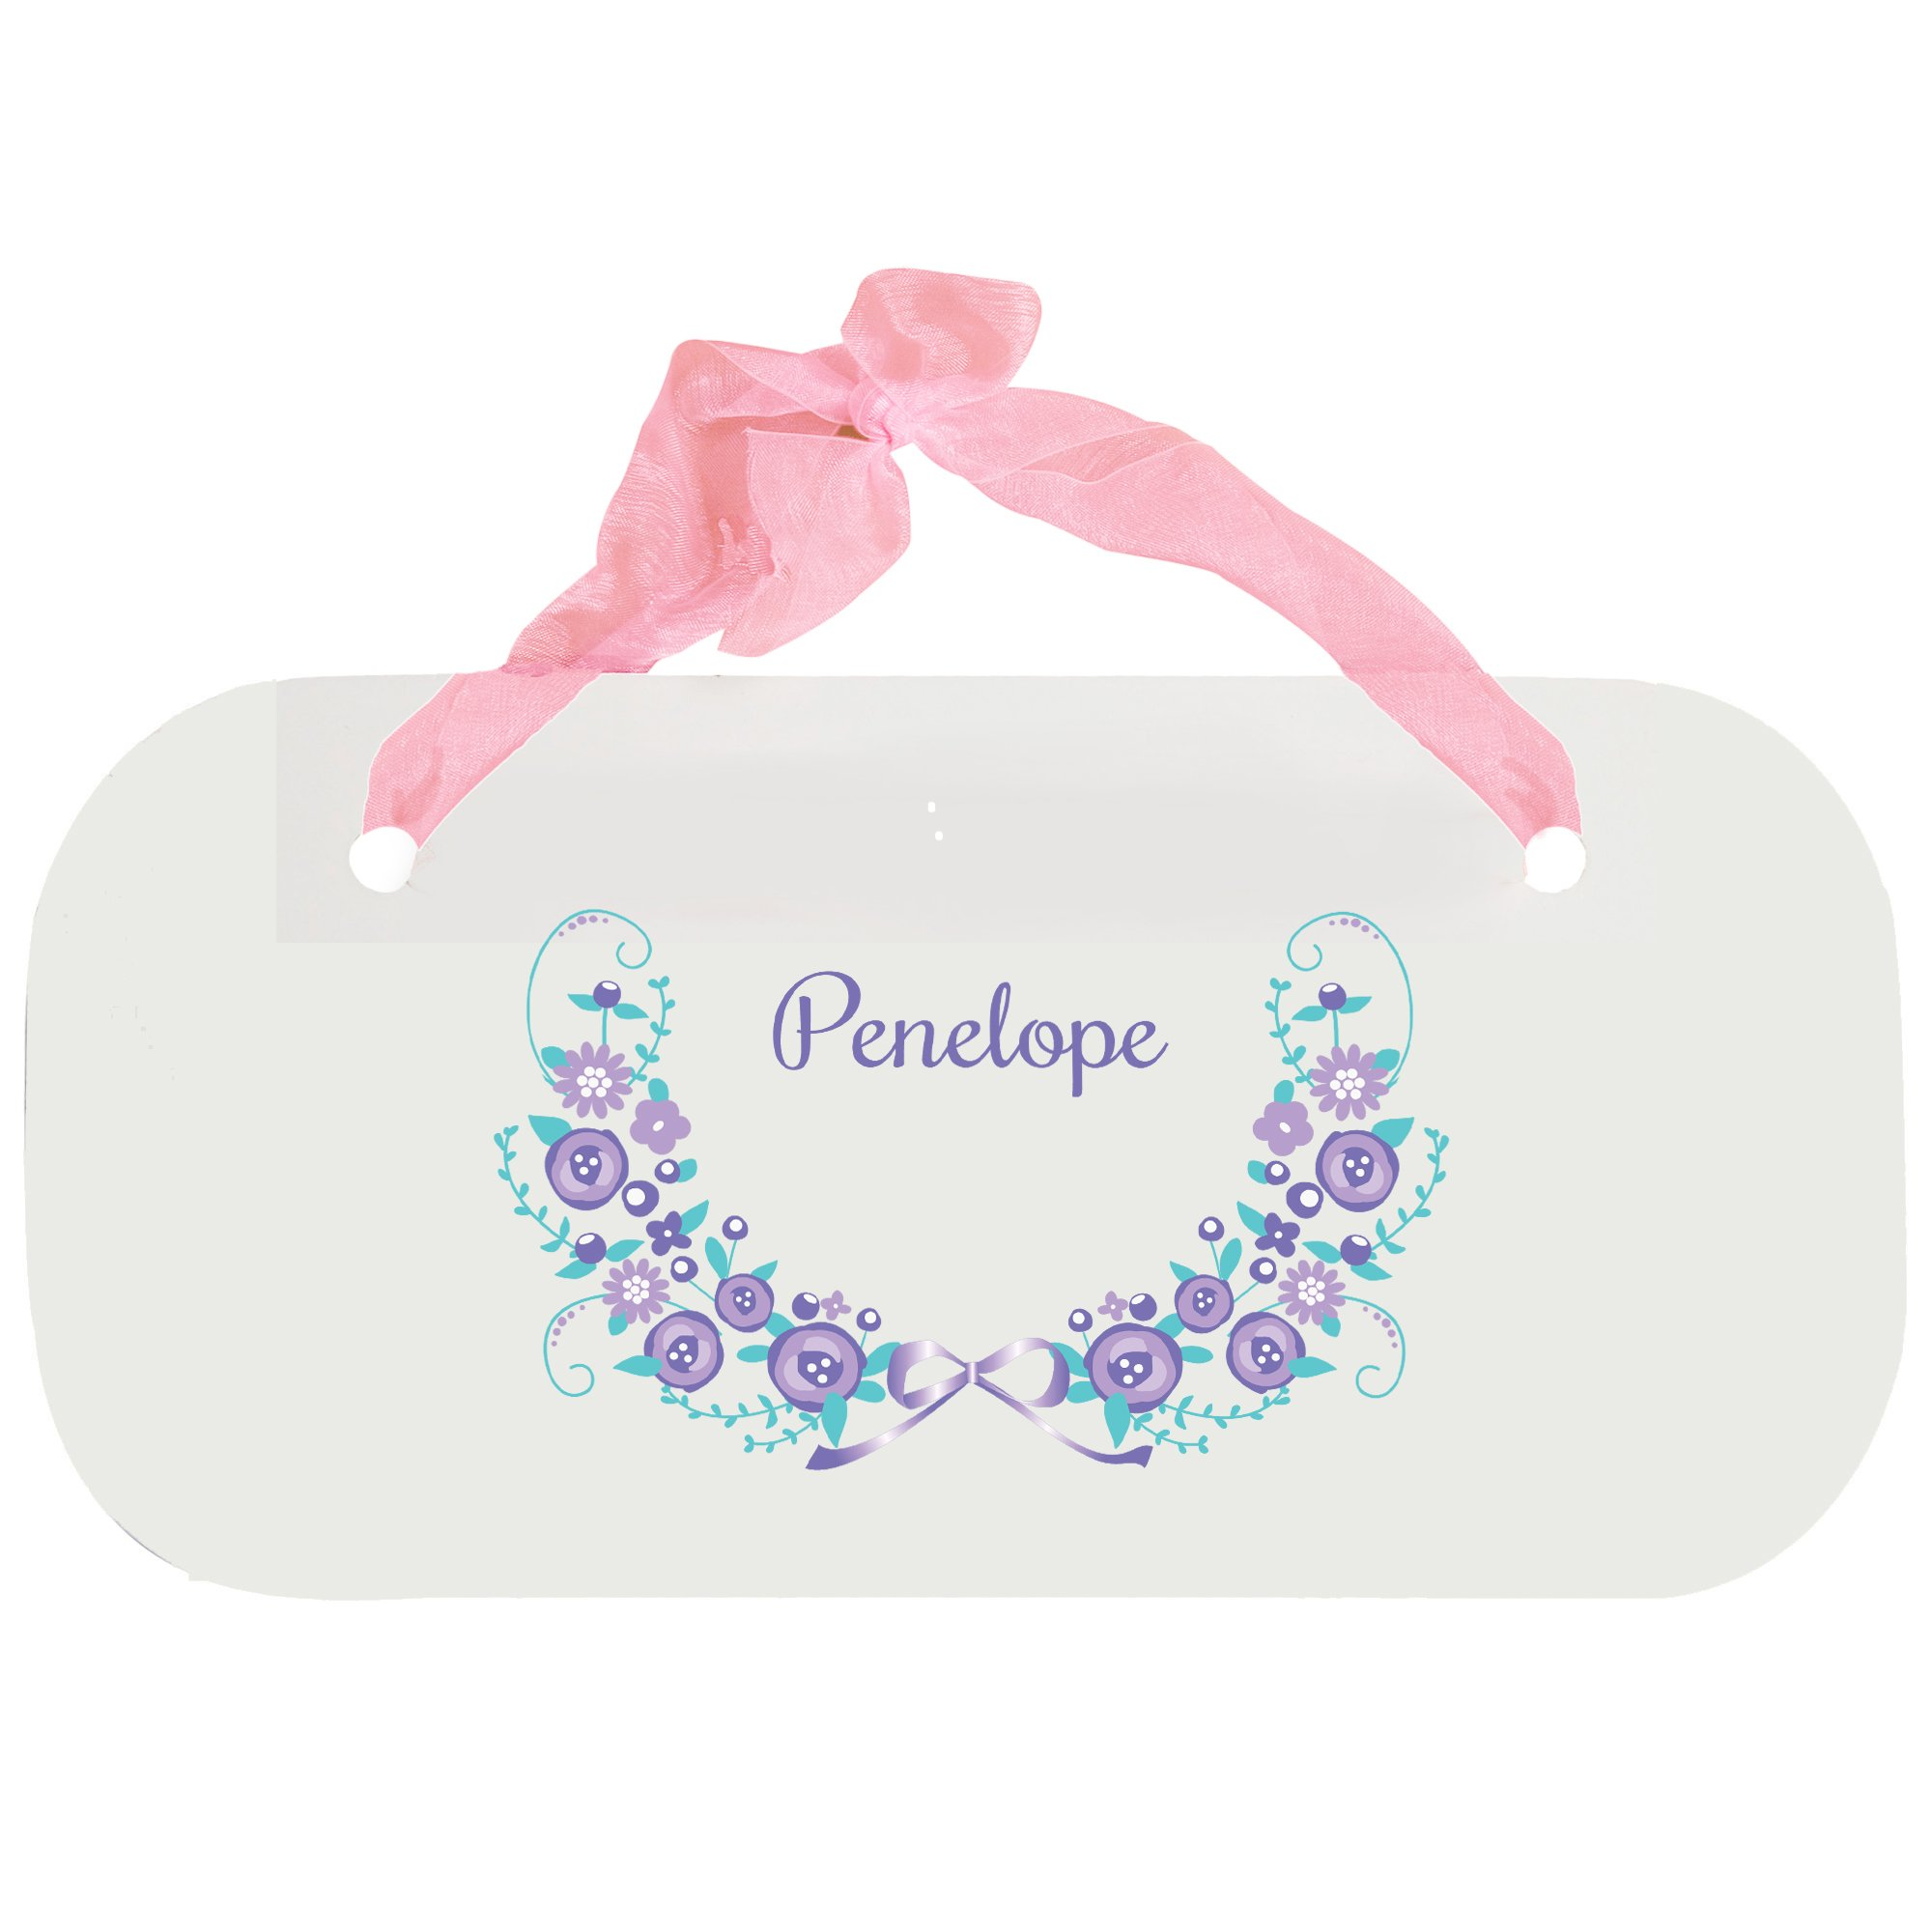 Personalized Lavender Floral Garland Nursery Door Hanger Plaque with Pink Ribbon